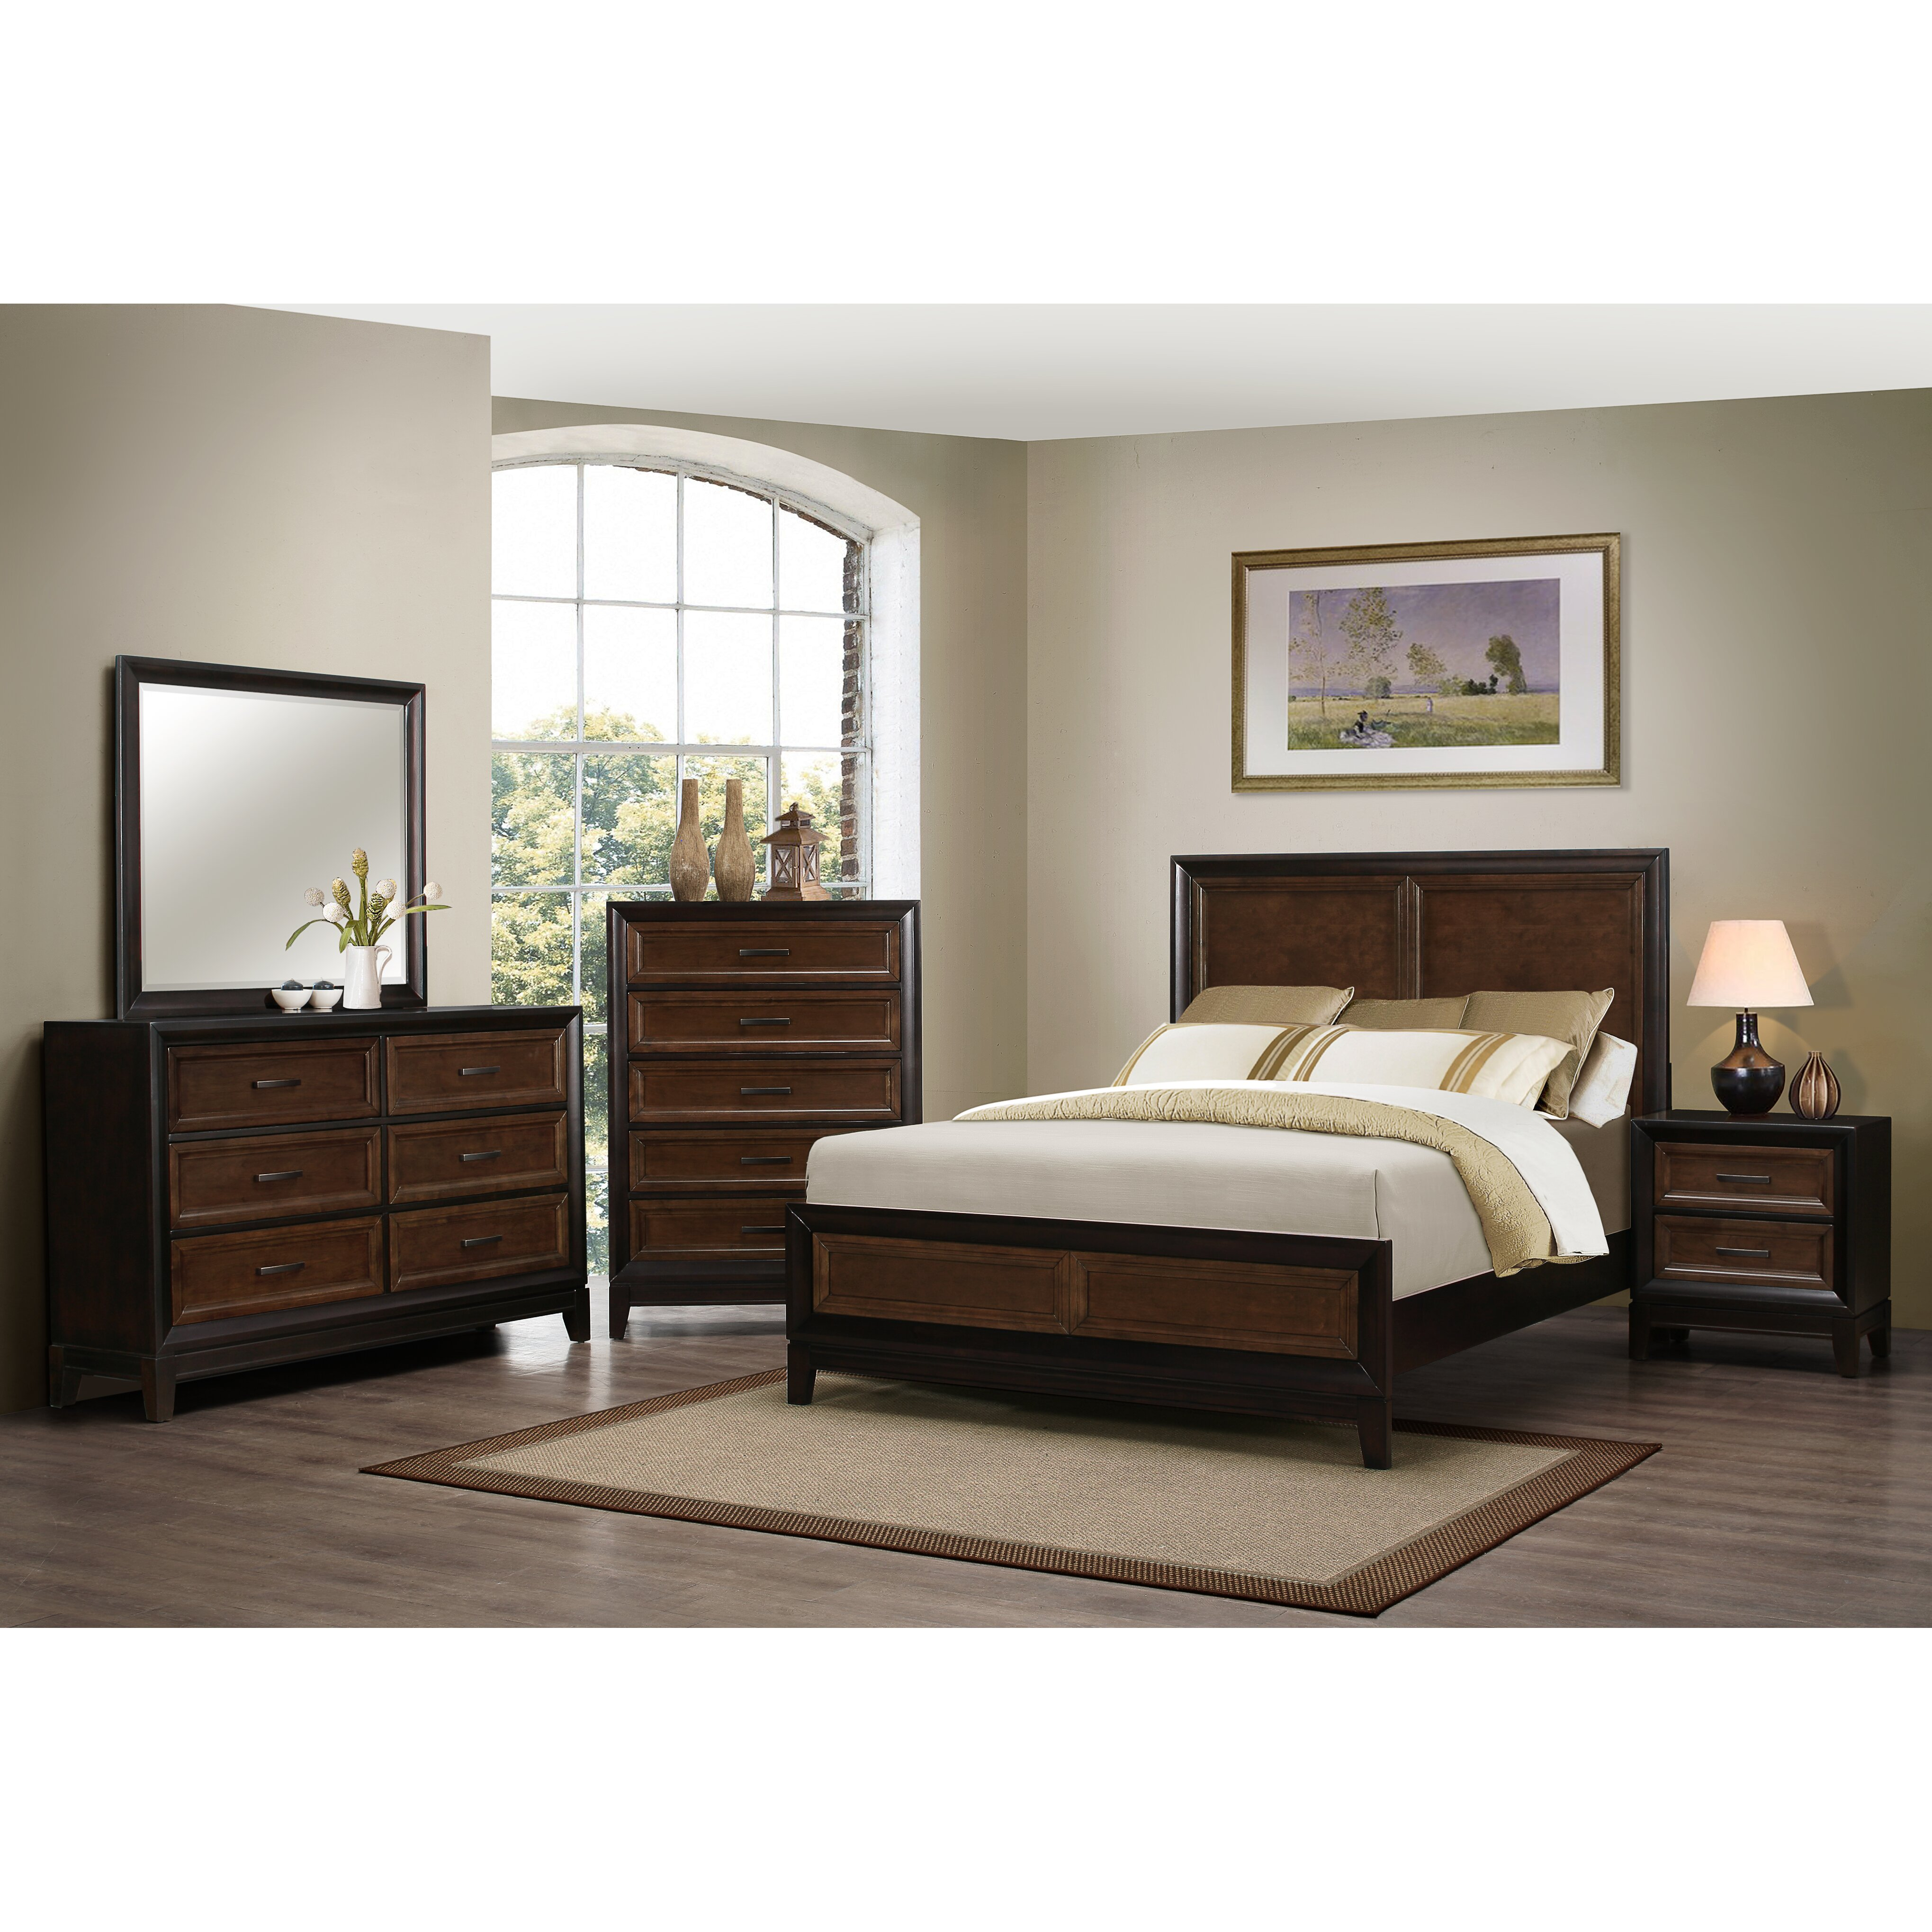 Darby Home Co Chernocke Panel Customizable Bedroom Set By